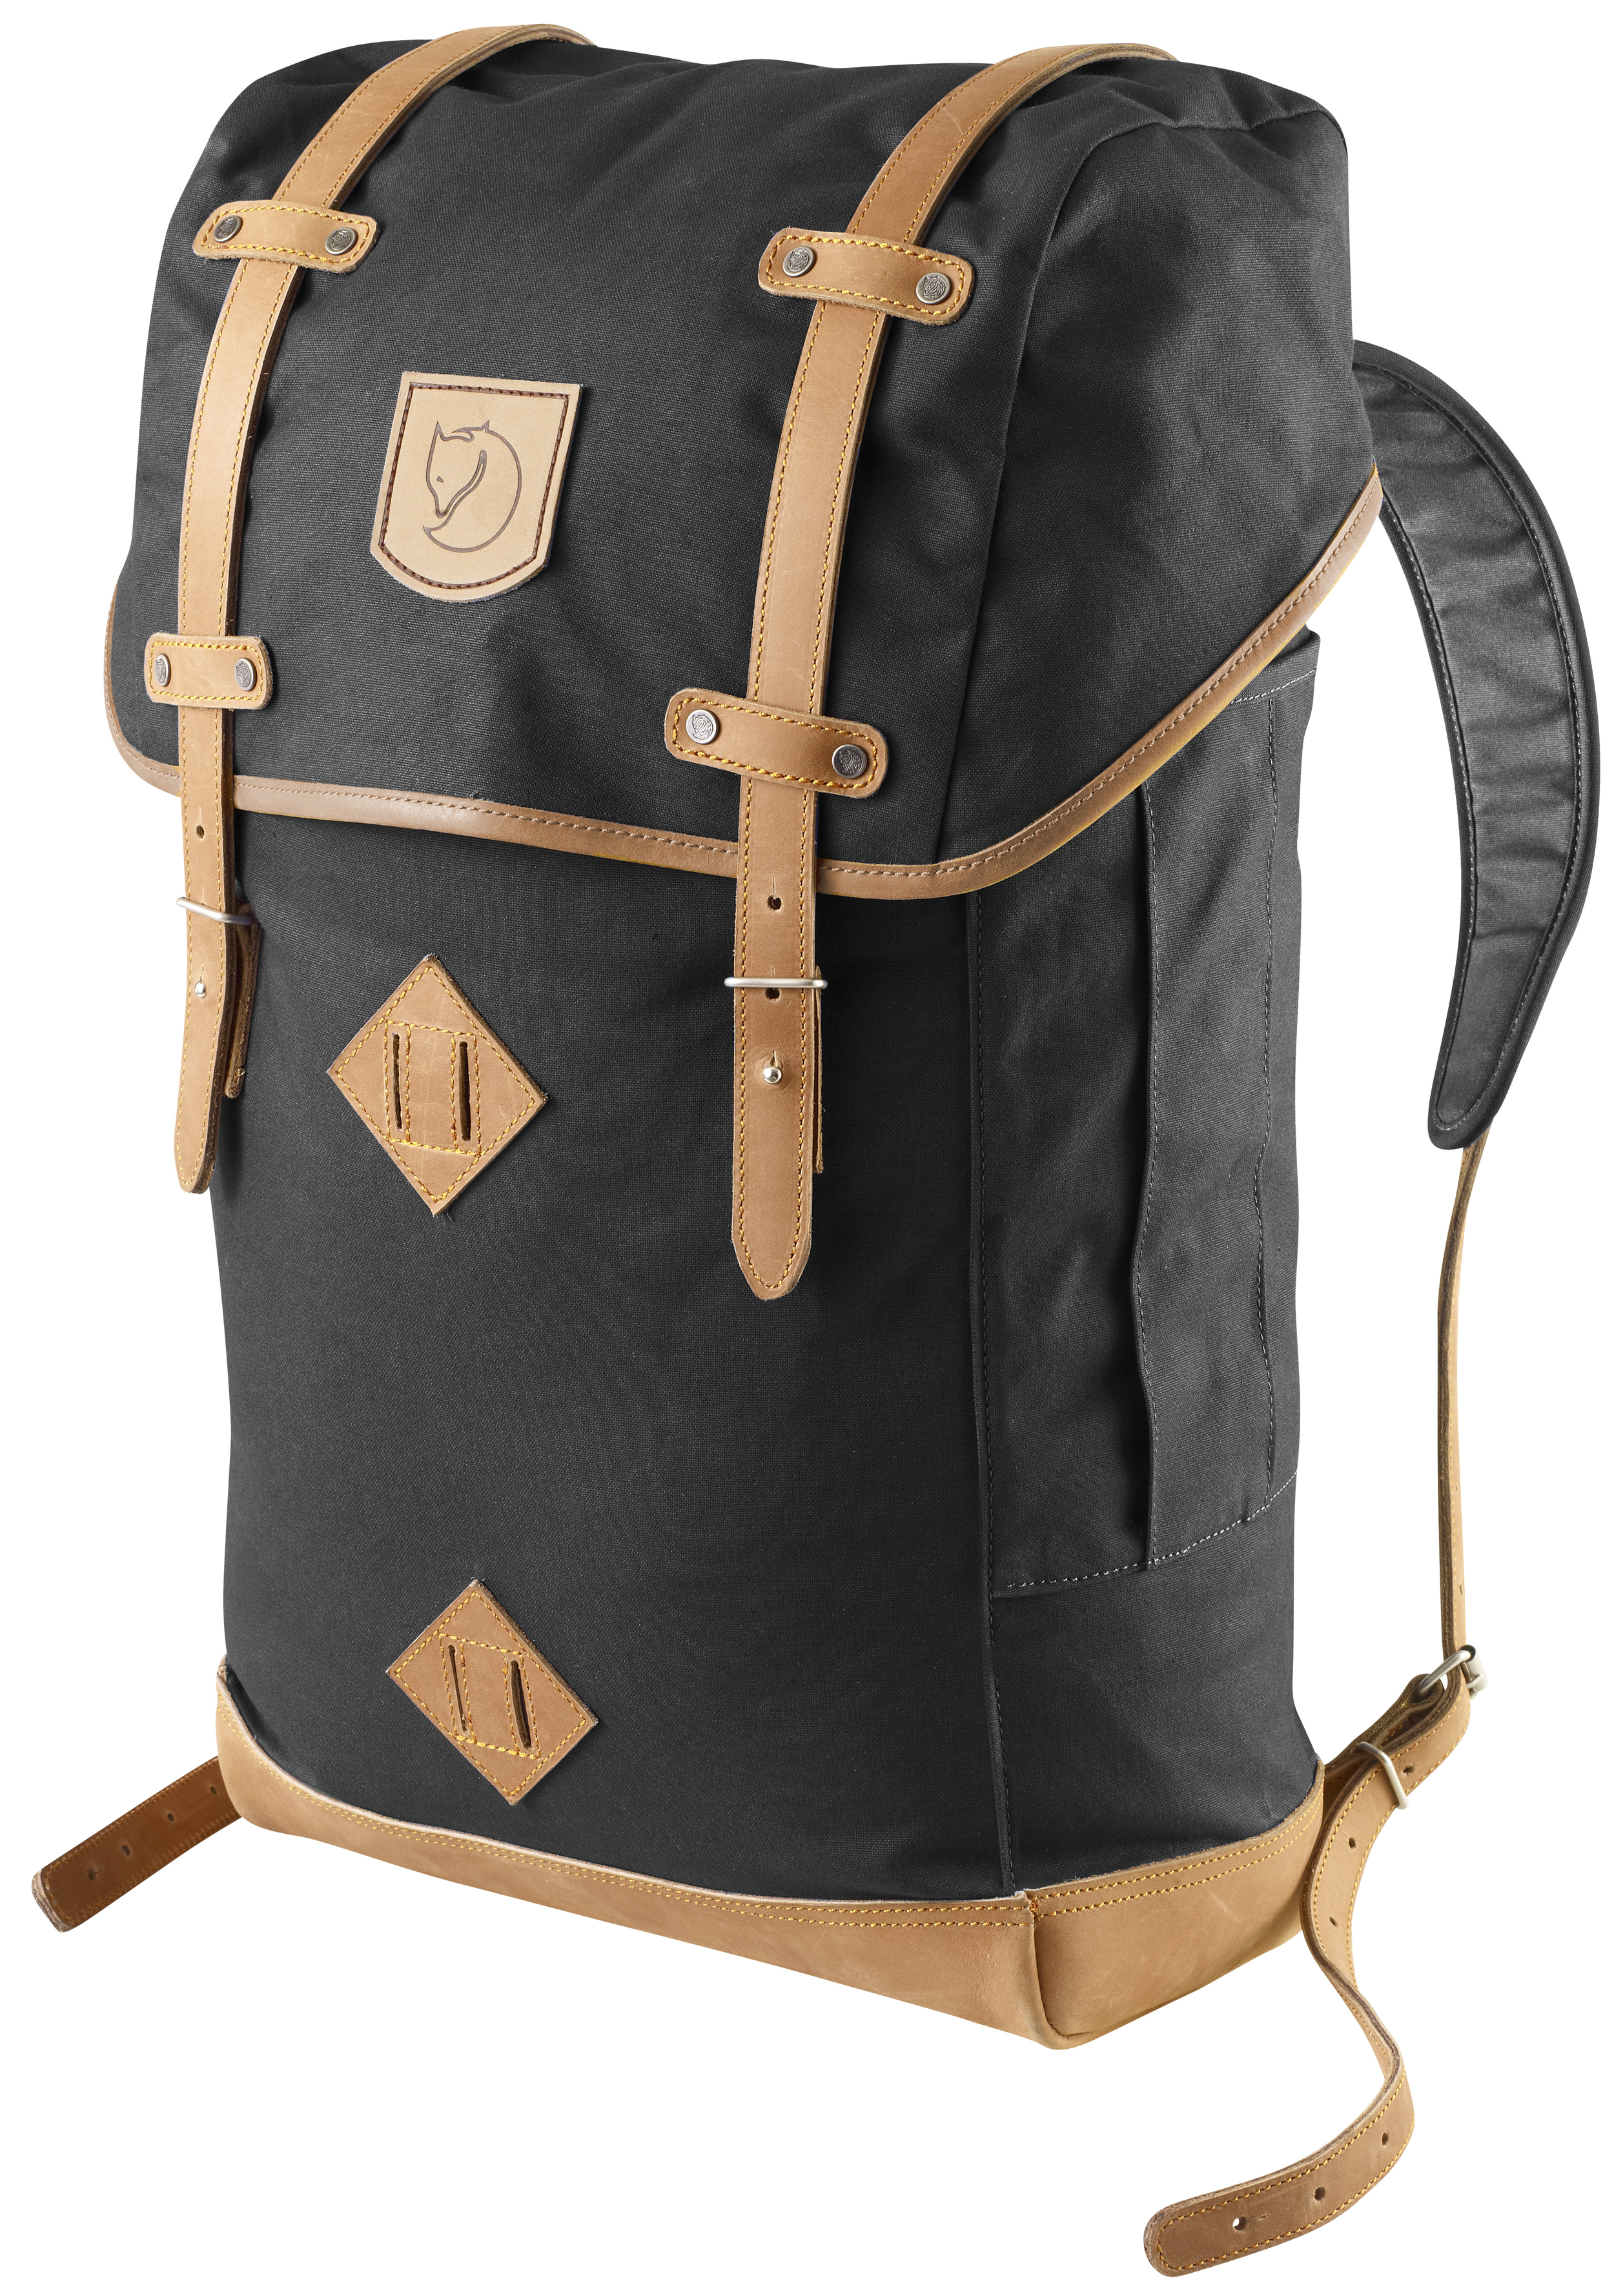 Fjällräven: The Rucksack   This pack want to climb mountains just for the epic selfie!  Aheavy-duty day hiker/overnighter built to last! If packed smart, you could easily use this for an overnight beach trip or into the hills.  Being a poly/cotton waxed canvas, the fabric on its own is water resistant but by waxing the fabric further, you can almost make it waterproof. The wax comes in a block which you just rub onto the fabric as lightly or as heavy as you want, and then you just melt it in with a blow-drier.  Made in Vietnam  $200   fjallraven.us